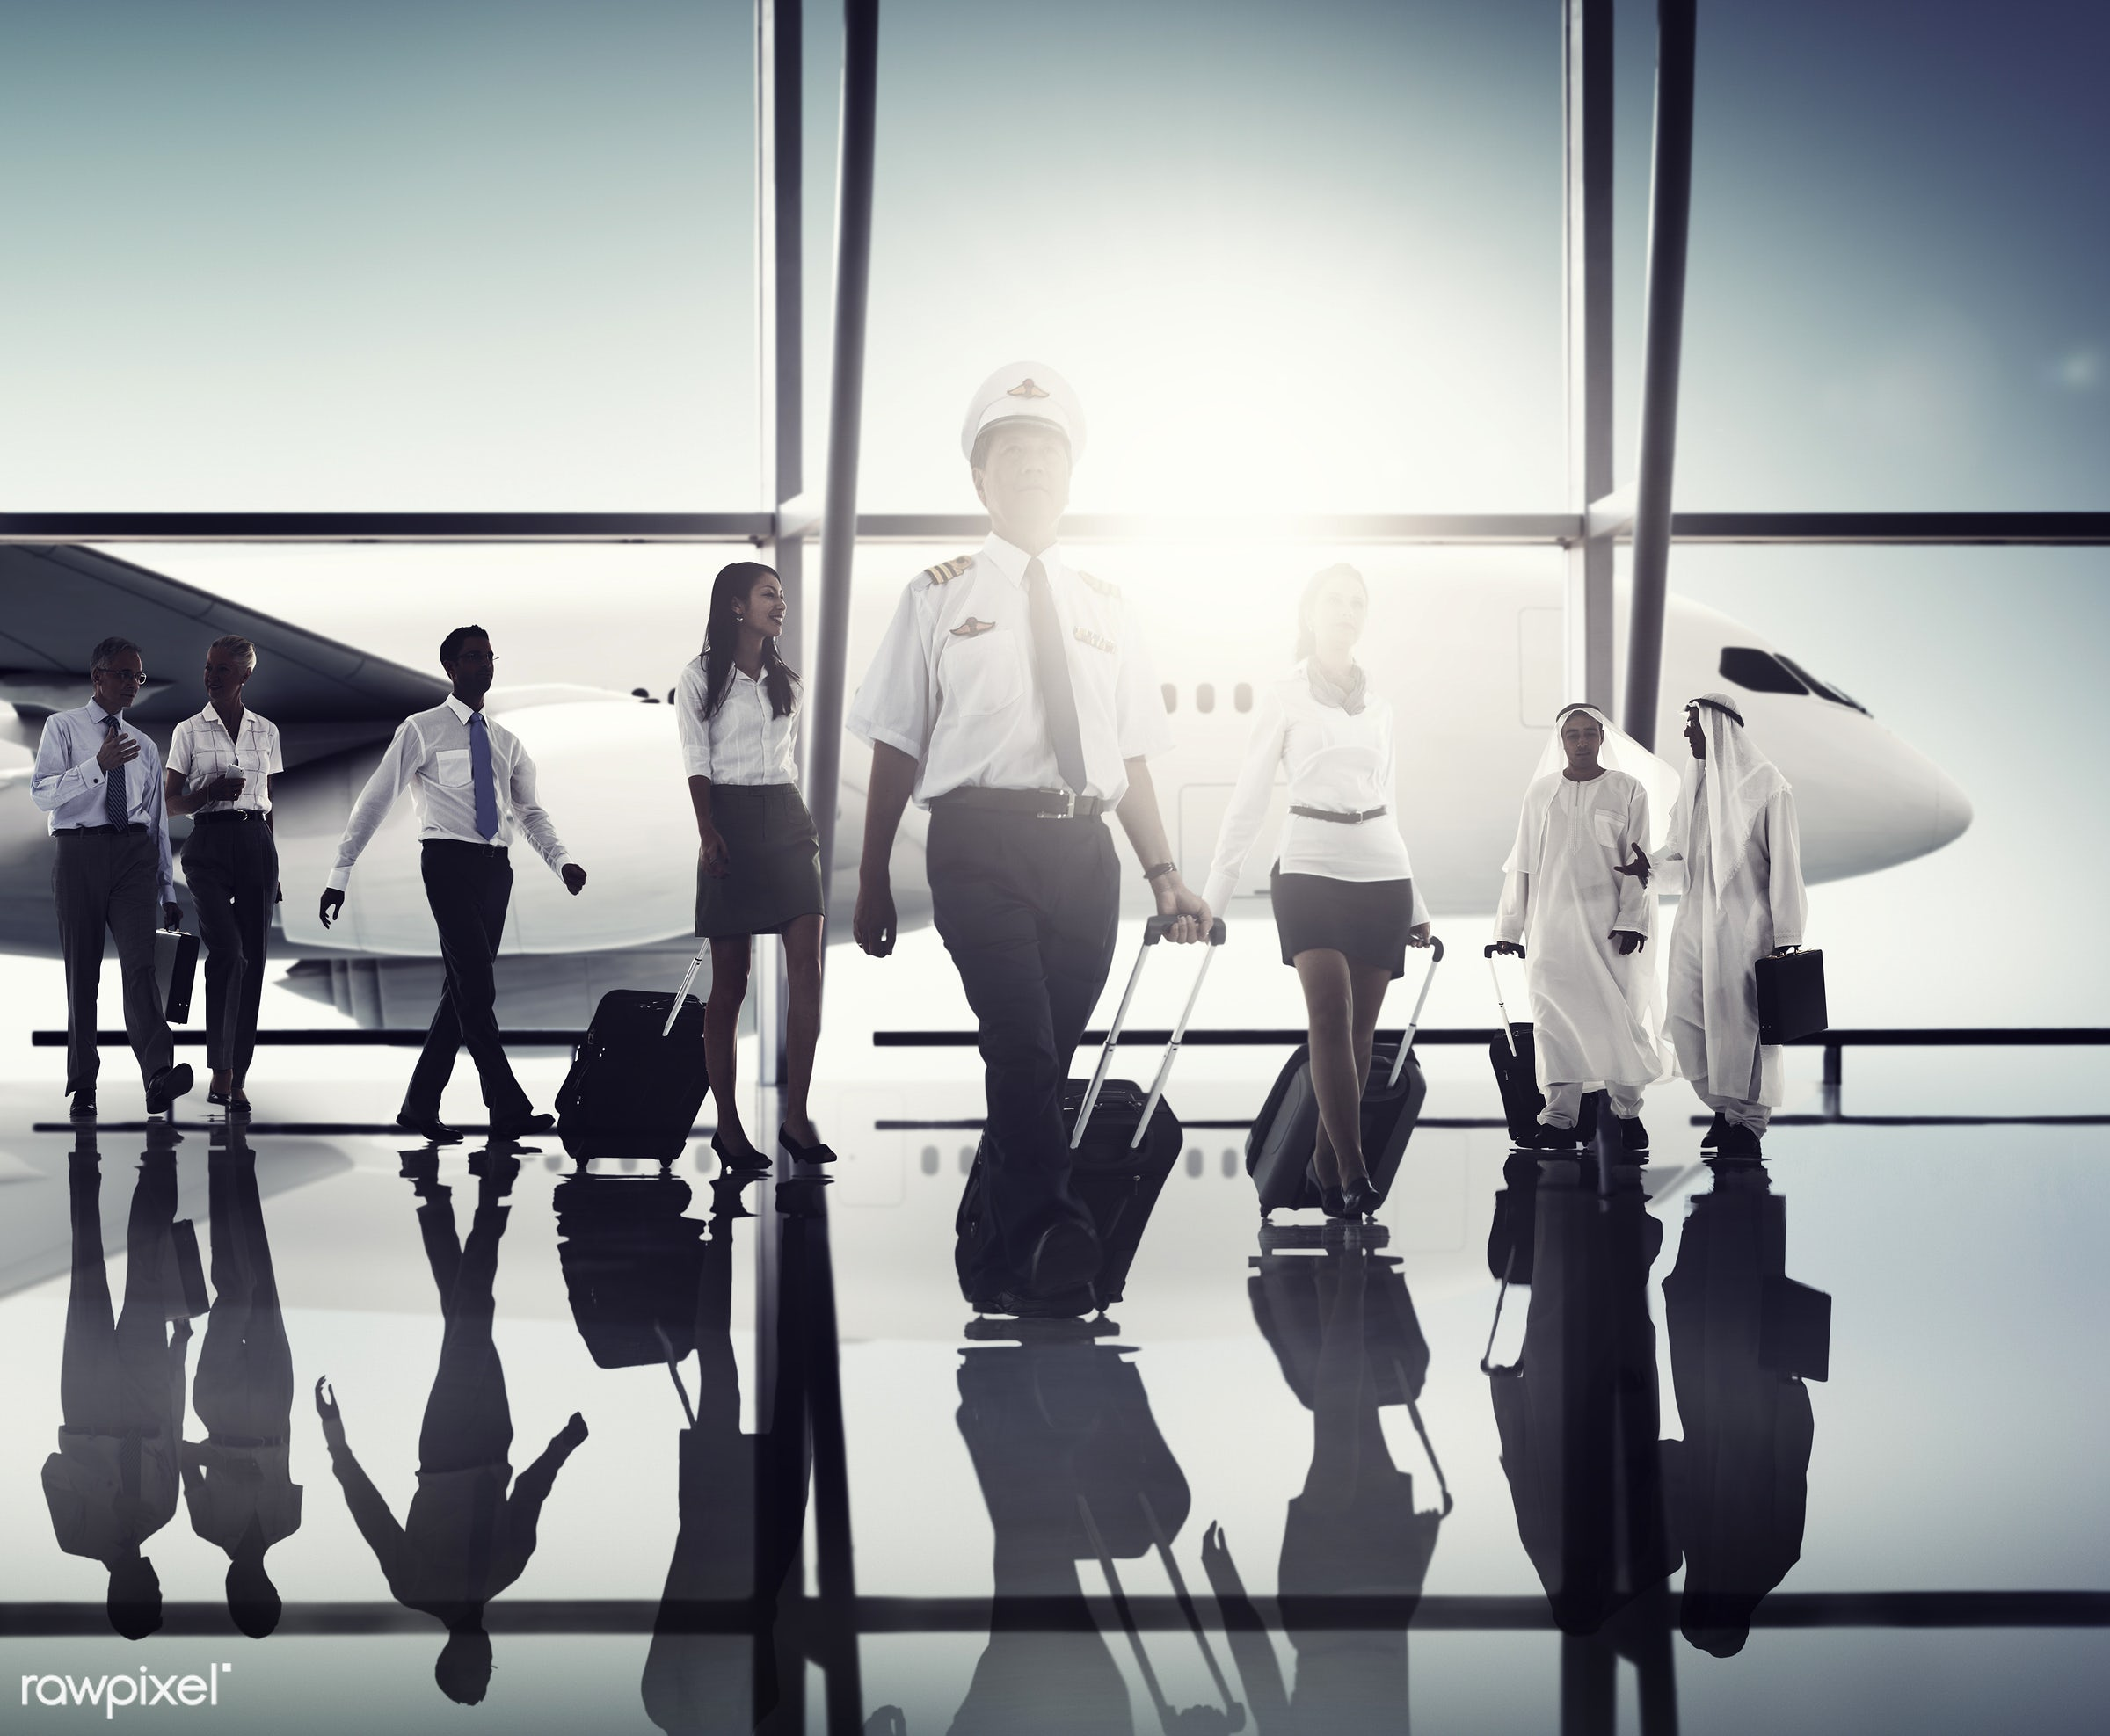 african, african descent, air stewardess, airplane, airport, asian, asian ethnicity, back lit, business people, business...